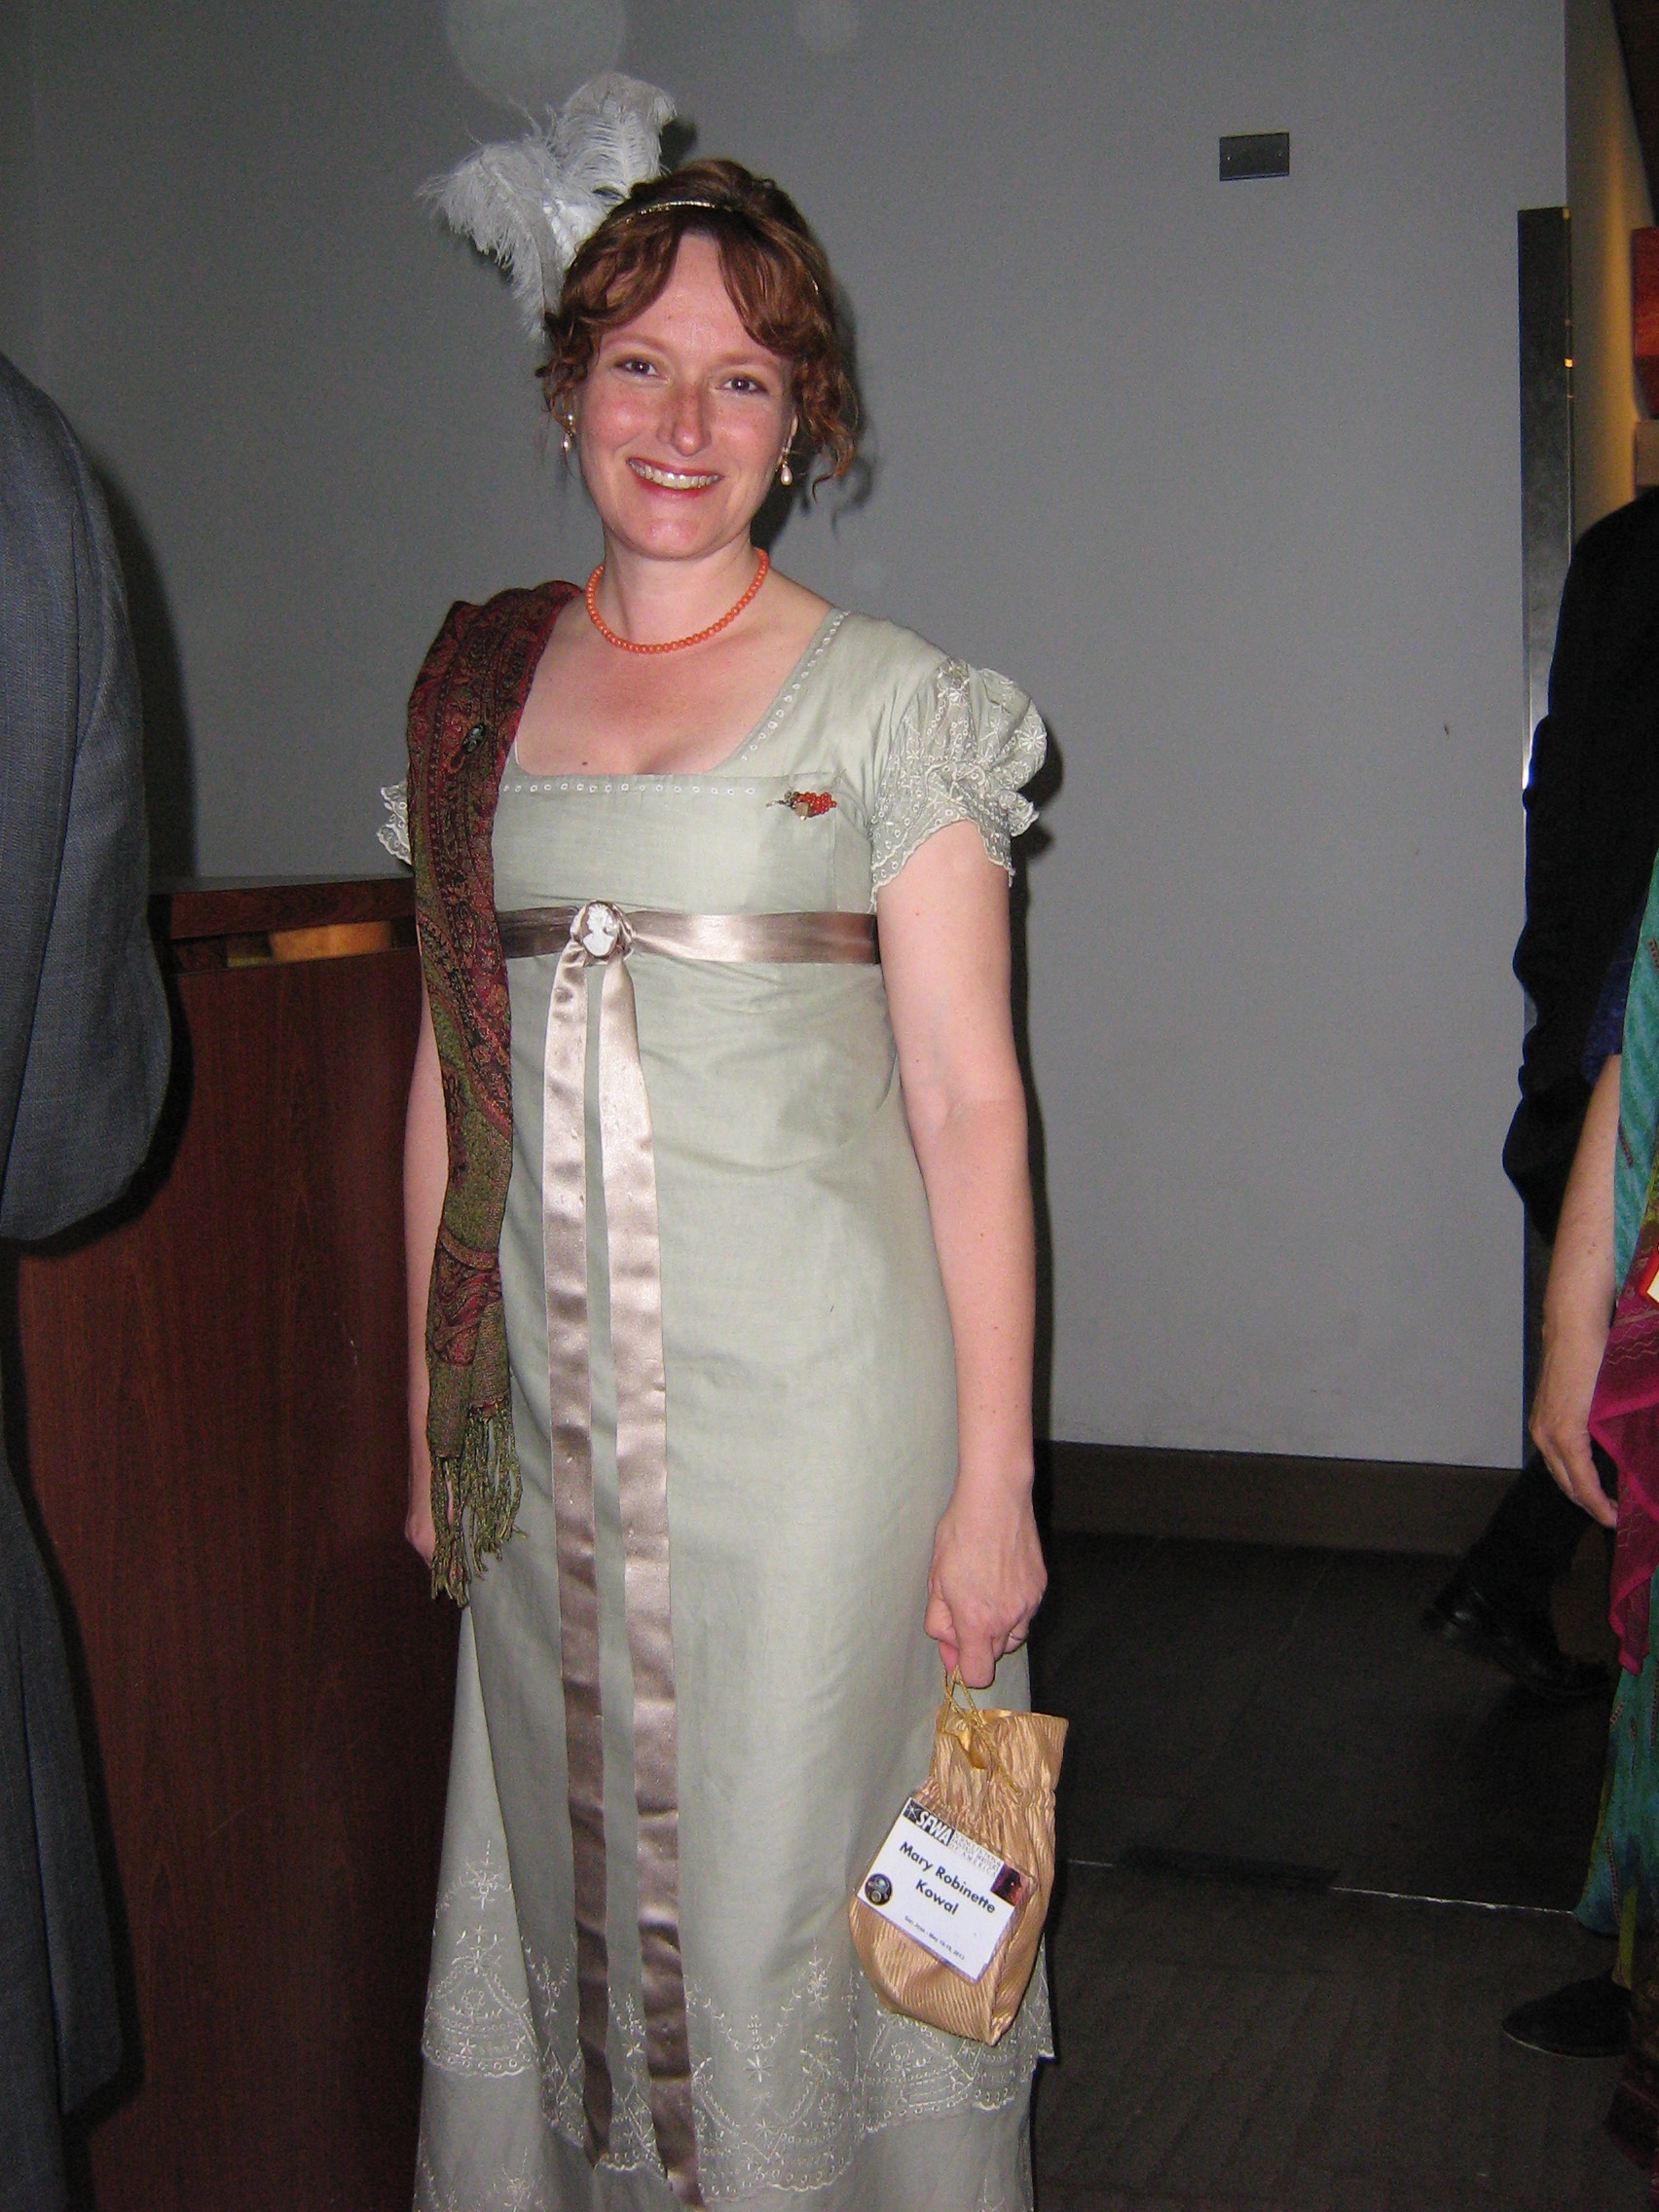 Mary Robinette Kowal in a hand-sewn Regency garment she made herself it is a pale grey with detailed lace gathered at the sleeves